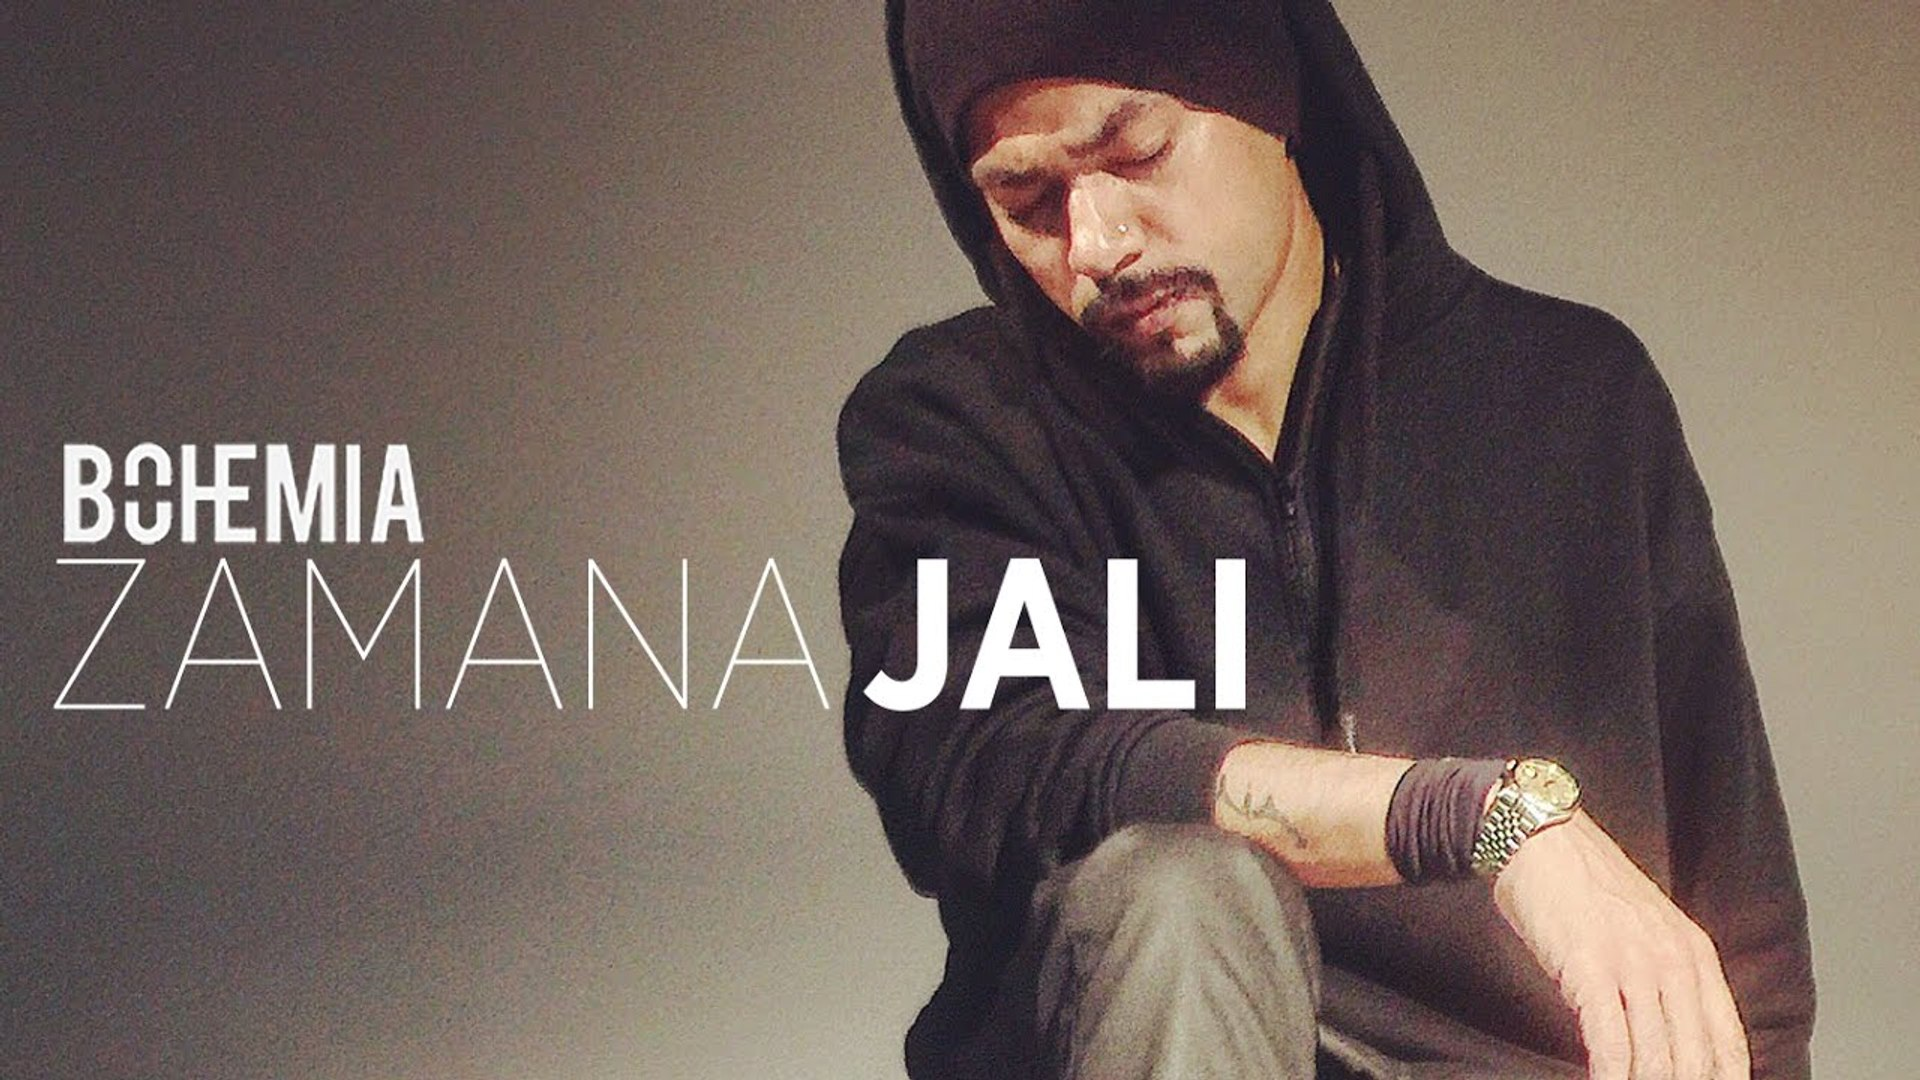 'BOHEMIA' Zamana Jali Video Song - Skull & Bones - New Song 2016